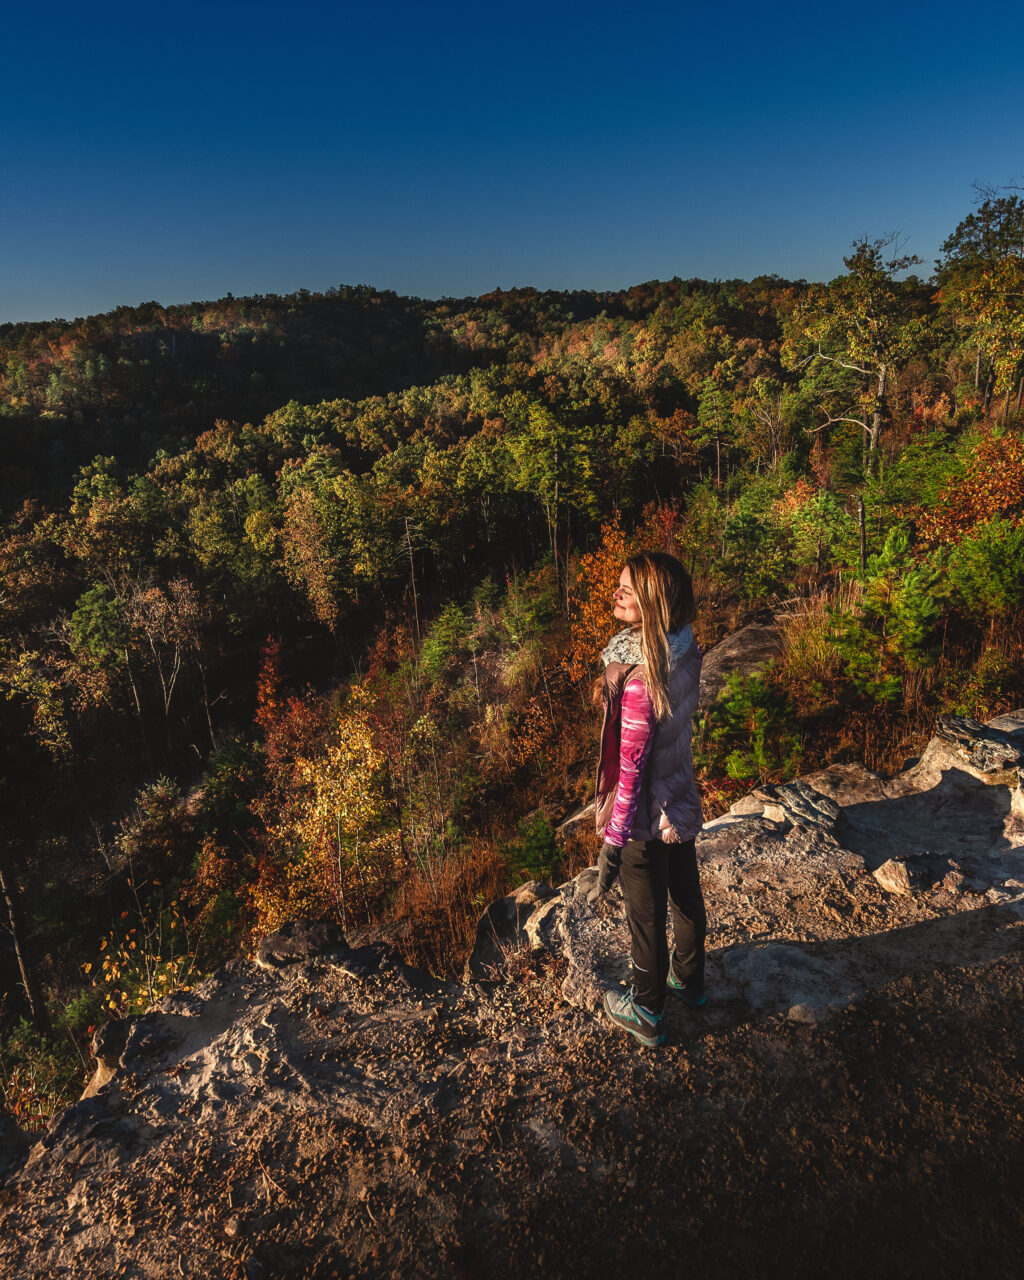 Woman hiker on cliff edge of Auxier Ridge Trail overlooking the trees on the valley floor of Red River Gorge in Kentucky.